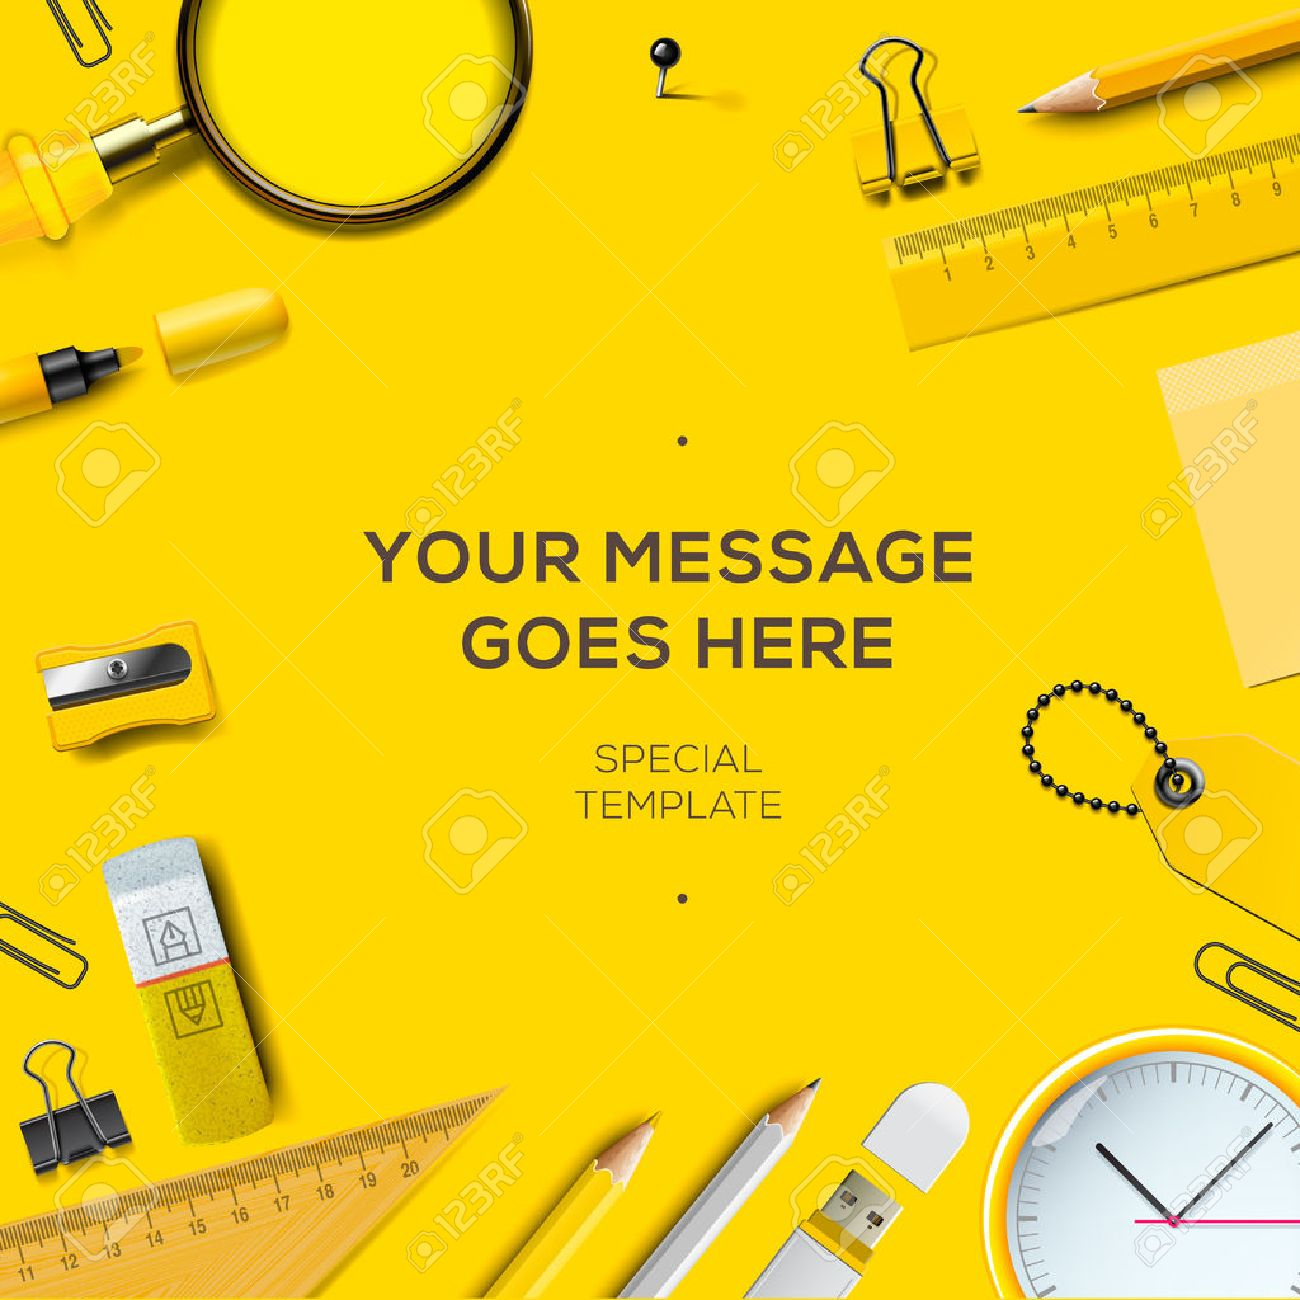 Colorful school supplies, yellow background, vector illustration. Standard-Bild - 49477276